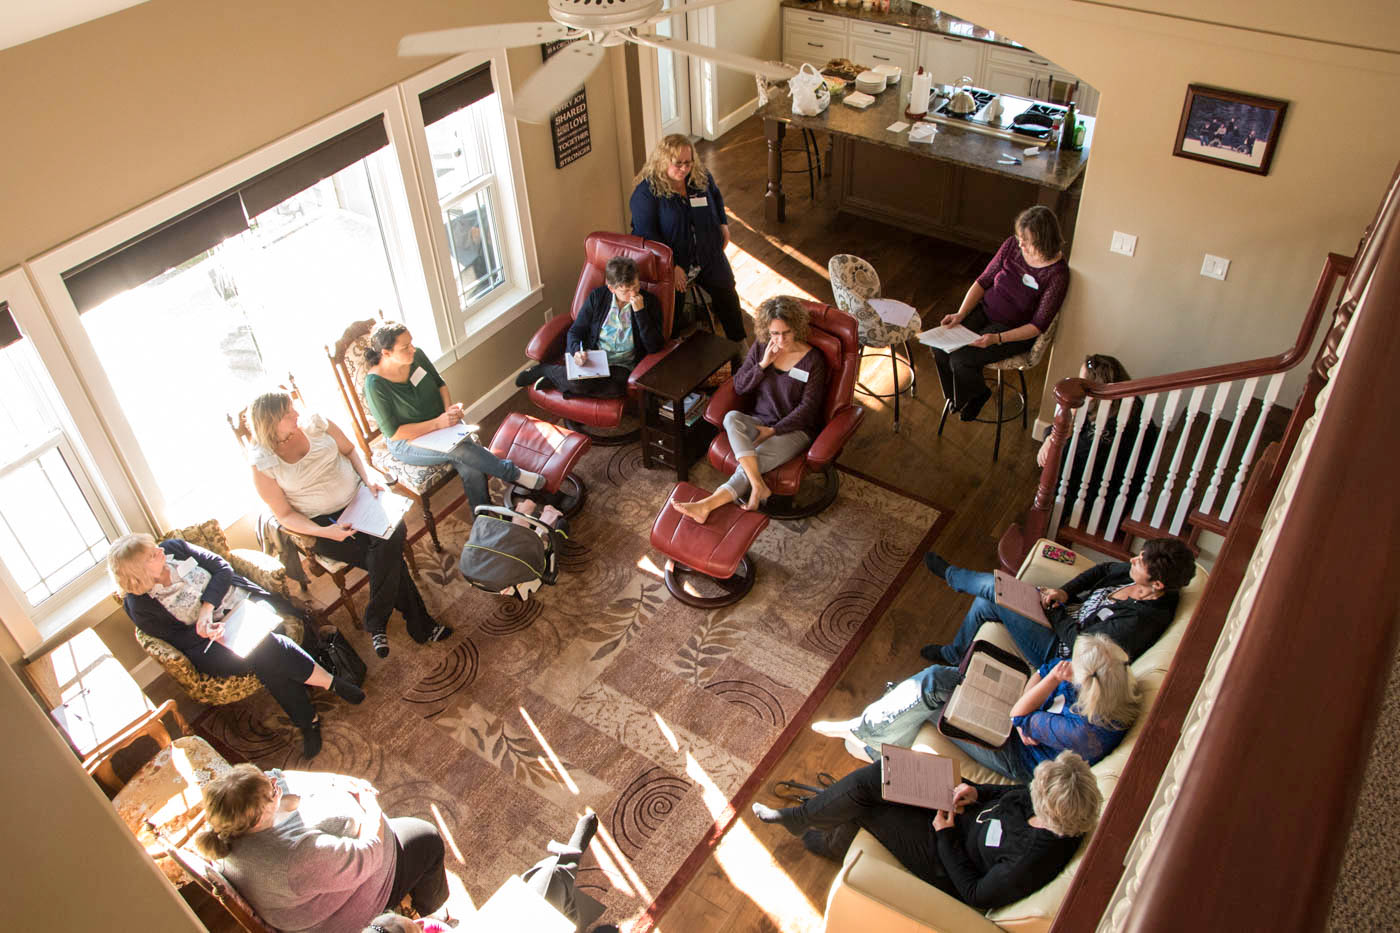 Bible Study in a Home